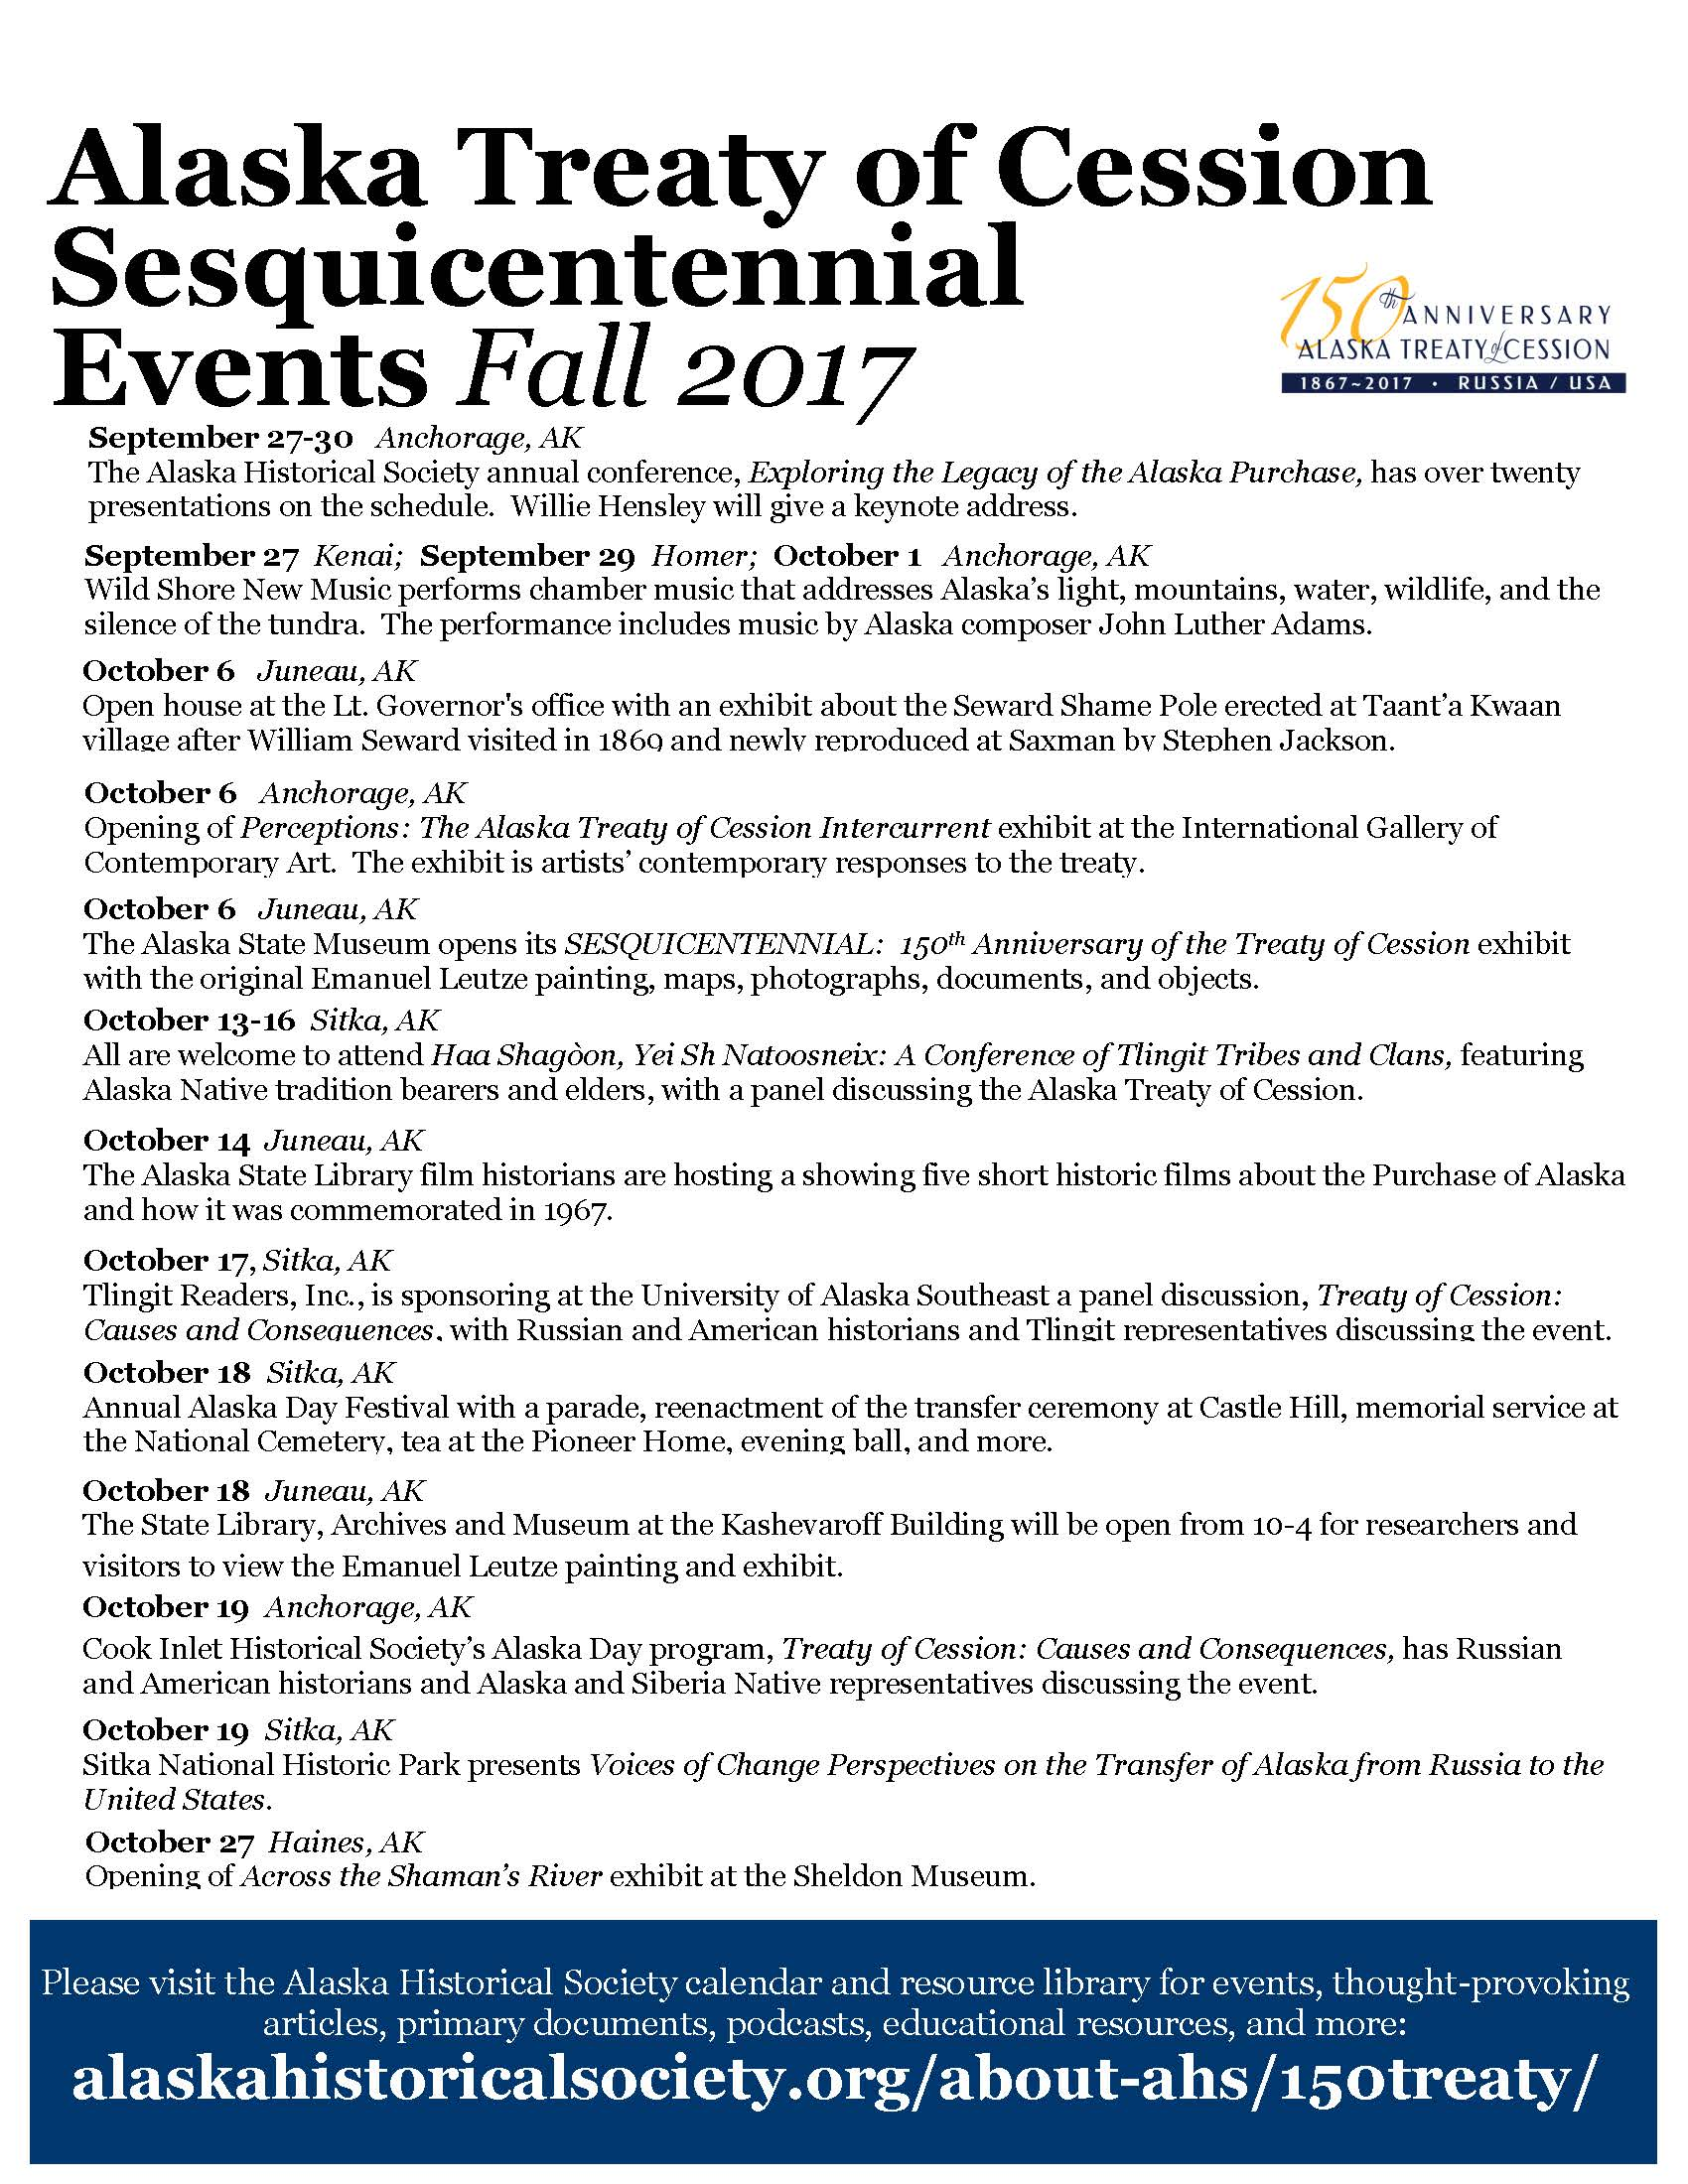 Sesquicentennial events fall 2017